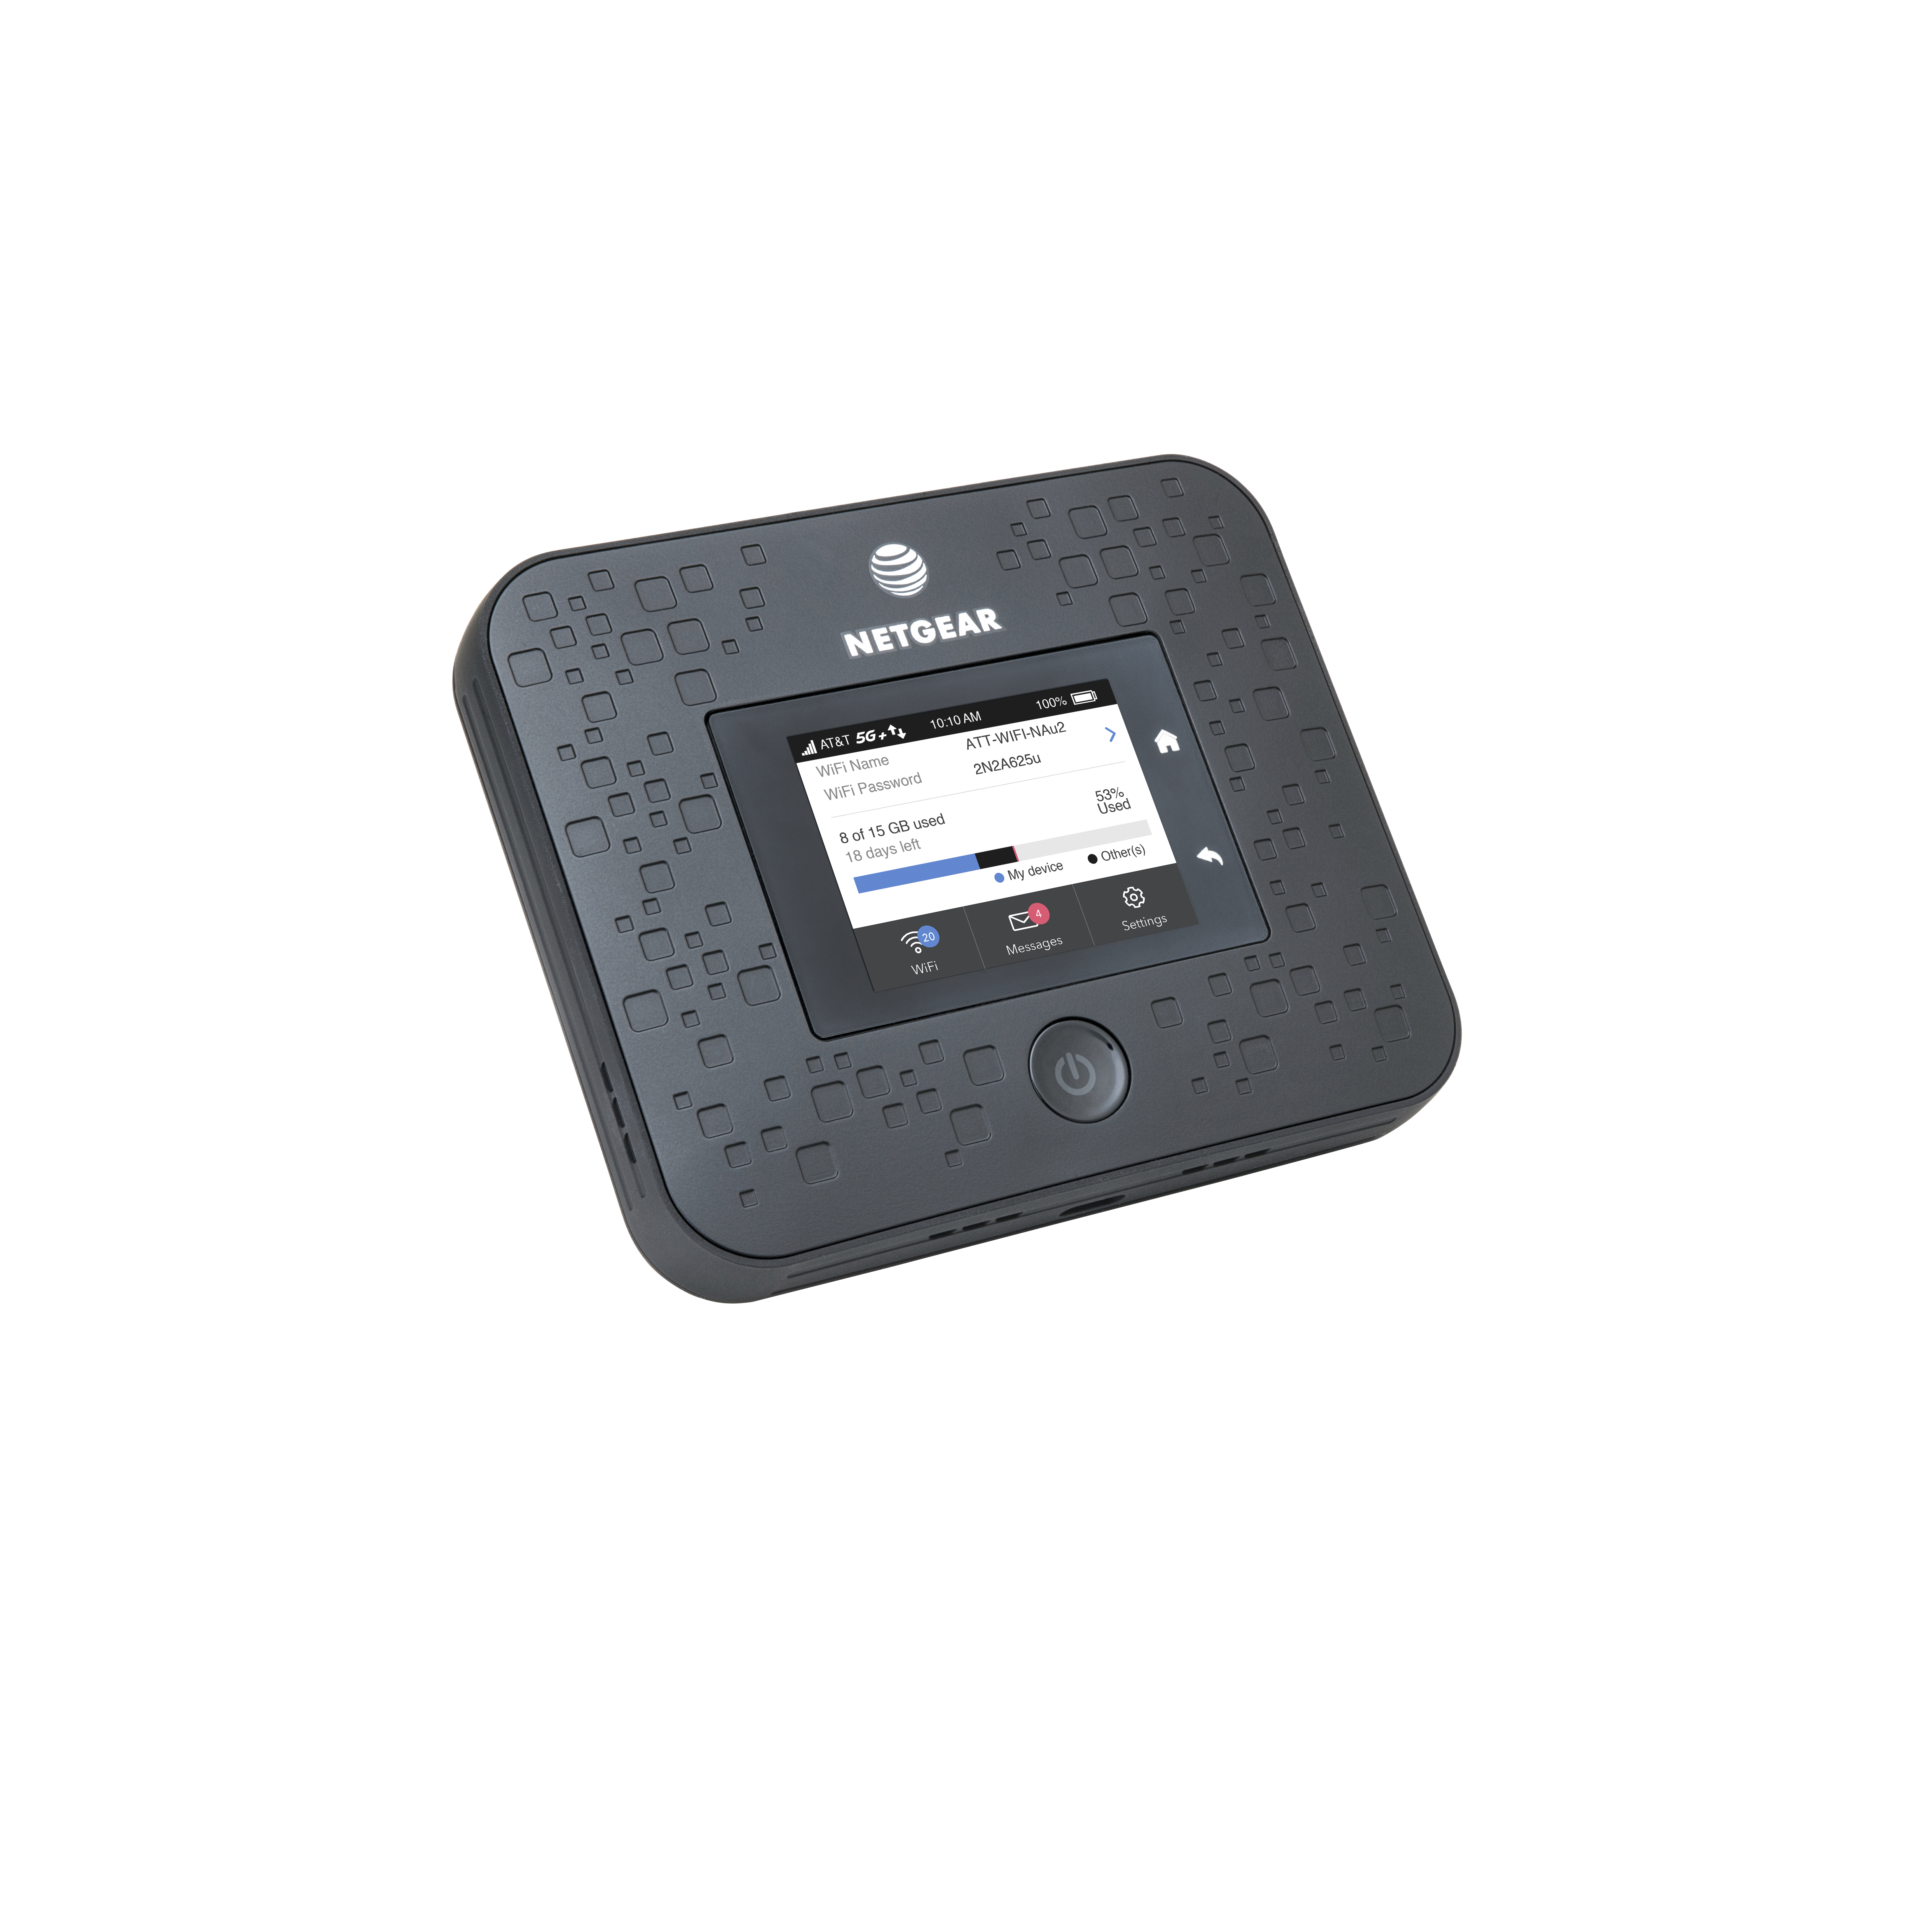 "<p><span style=""font-size: 1em; background-color: transparent;"">Starting this spring, the Netgear Nighthawk 5G Mobile Hotspot will be available for $499, with a 15-gigabyte plan costing $70 a month.</span></p>(Courtesy of AT&T)"